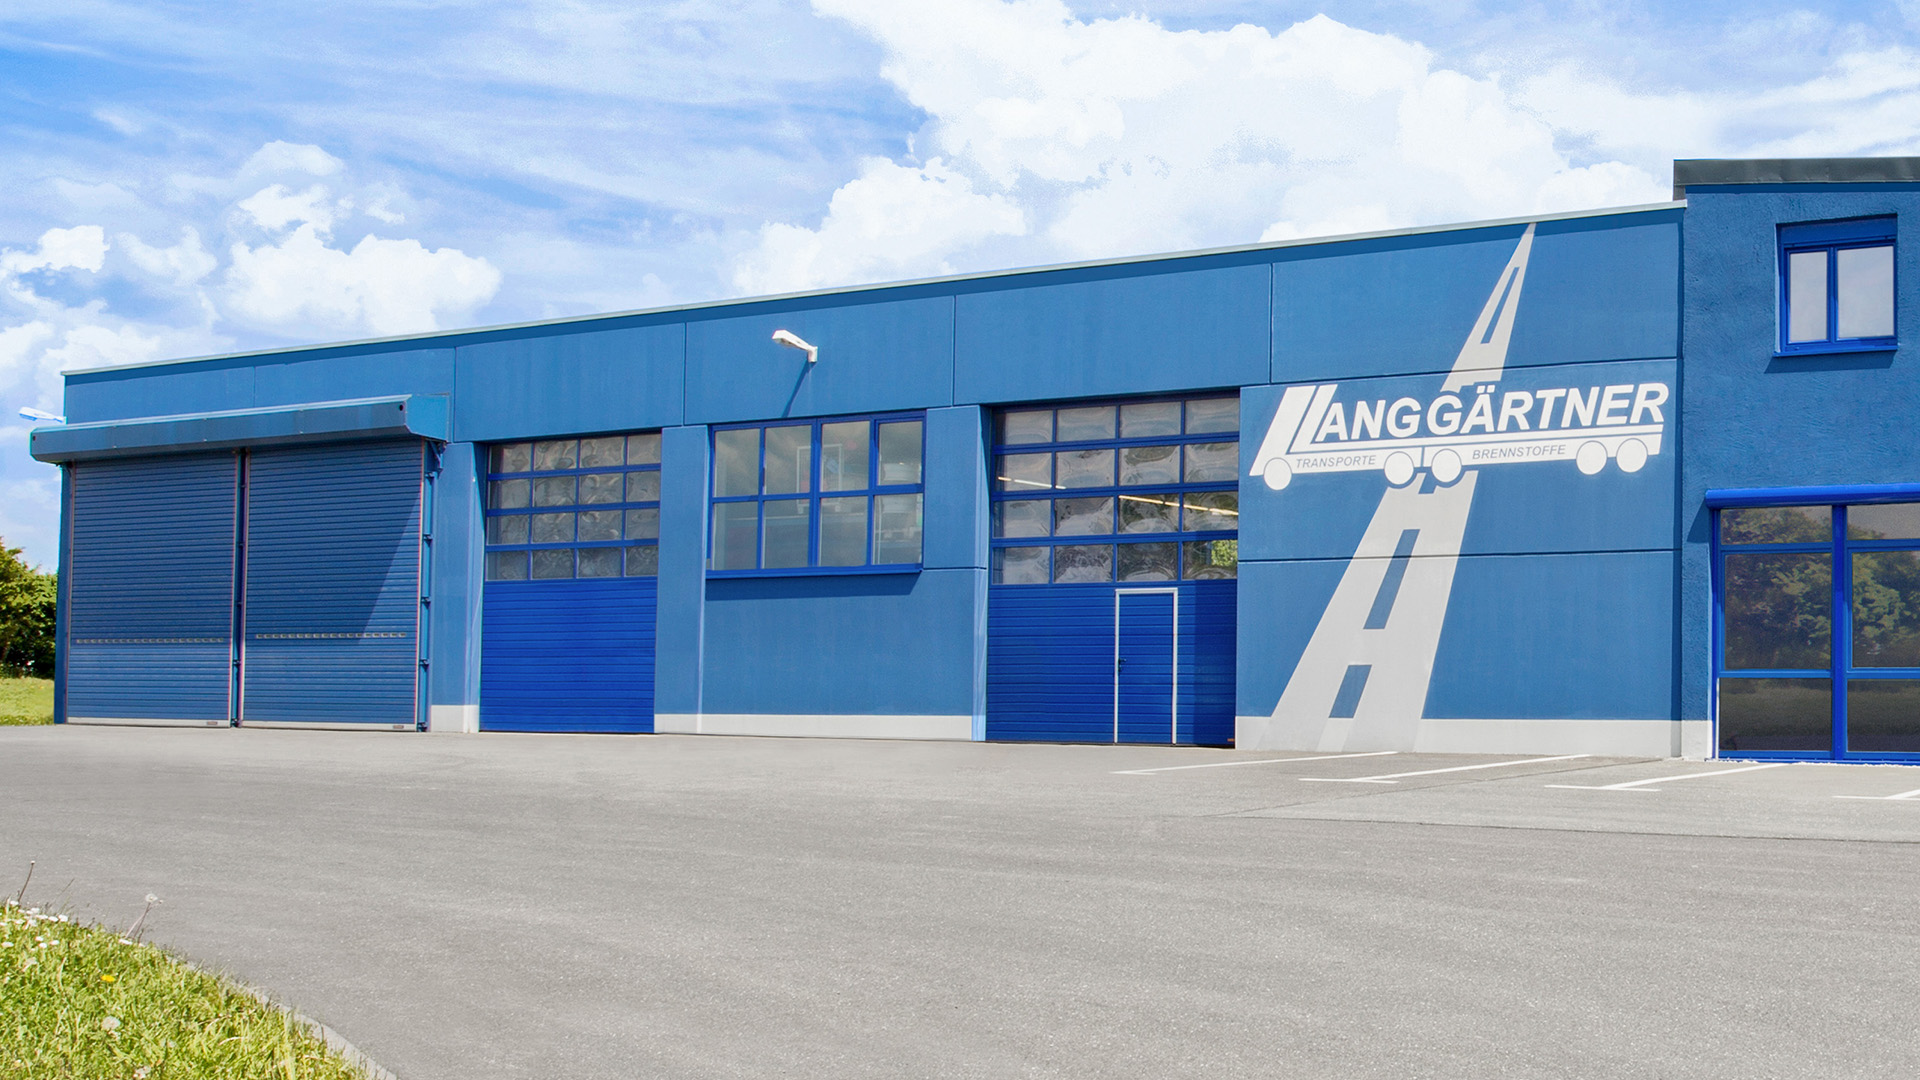 Spedition Langgärtner